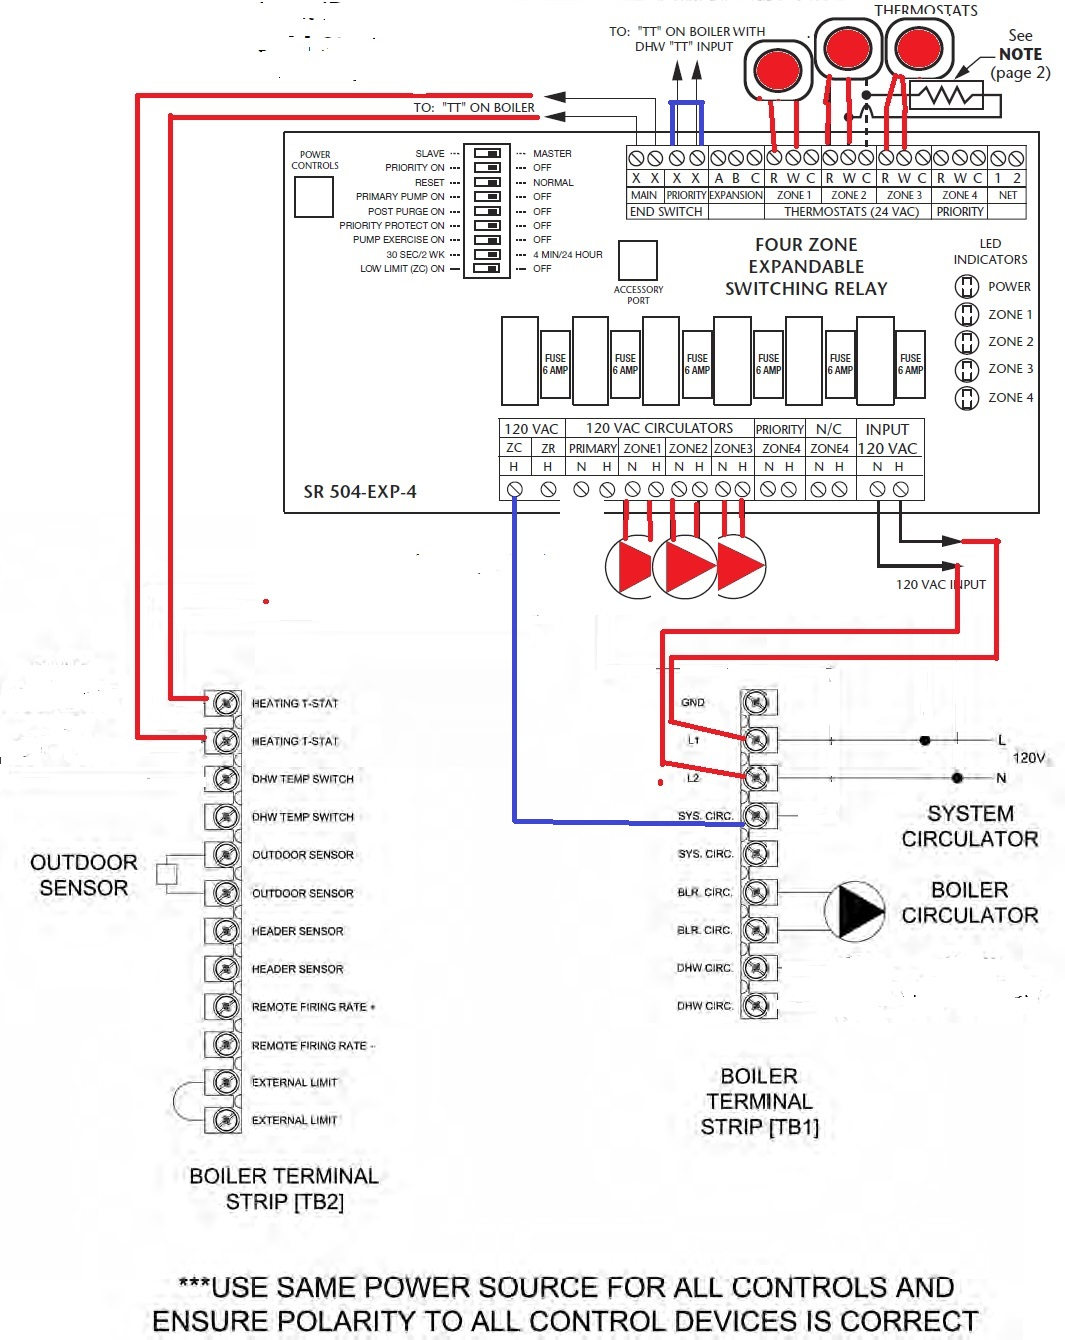 taco sr504 schematic  taco  get free image about wiring diagram Taco Switching Relay Wiring taco sr504-4 wiring diagram